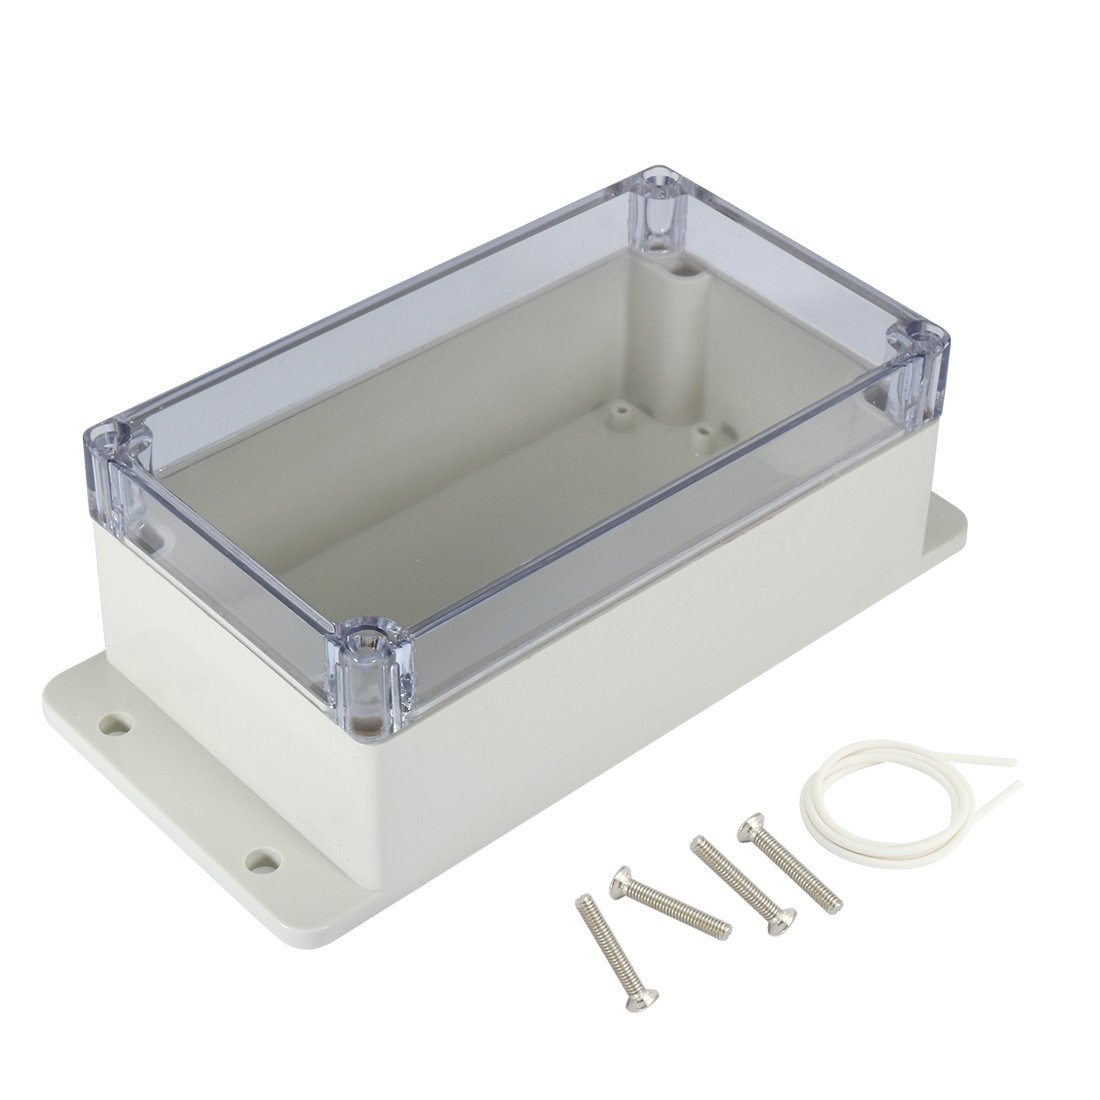 uxcell 6.2x3.5x2.5(158mmx90mmx64mm) ABS Junction Box Universal Project Enclosure w PC Transparent Cover a17031600ux1137